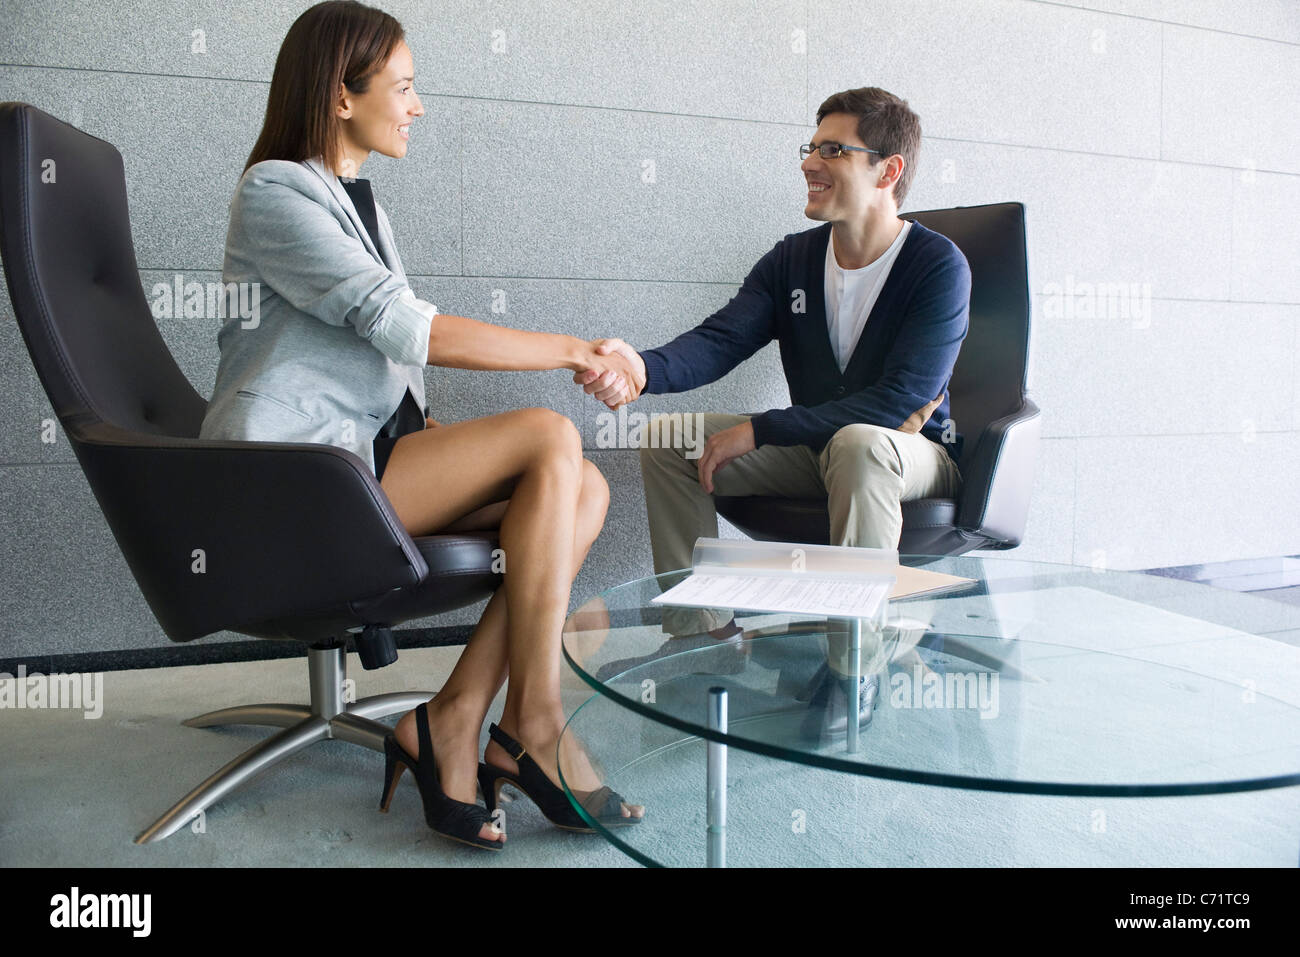 Businesswoman shaking hands with client Photo Stock